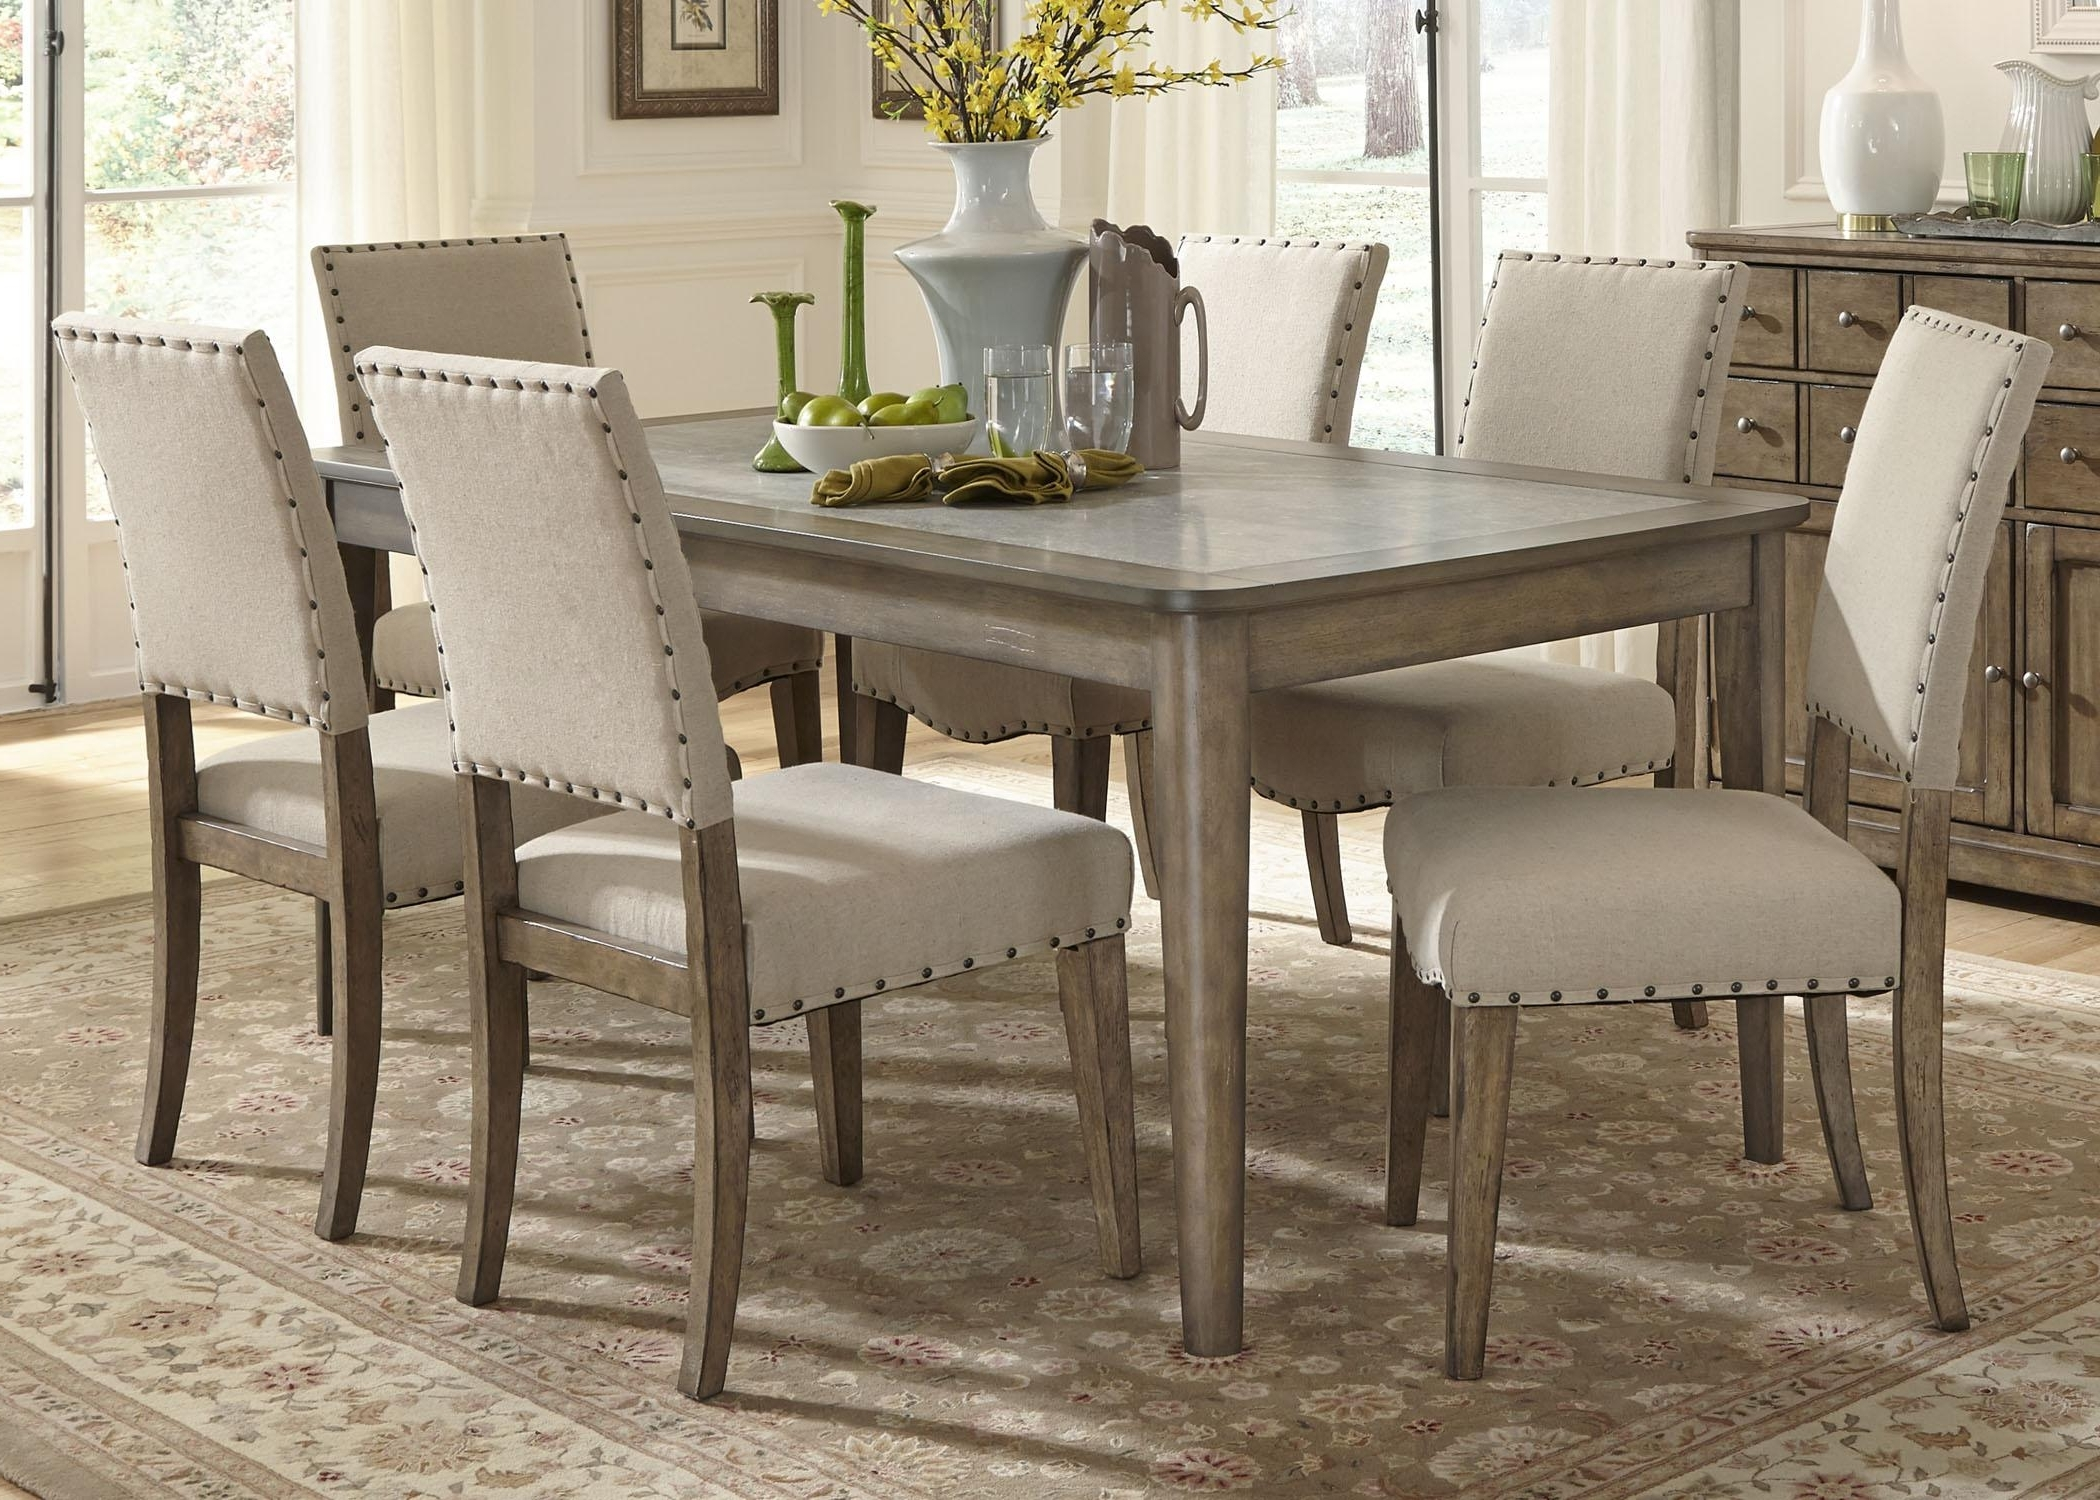 Trendy Dining Table Sets With Regard To Liberty Furniture Weatherford Casual Rustic 7 Piece Dining Table And (View 22 of 25)